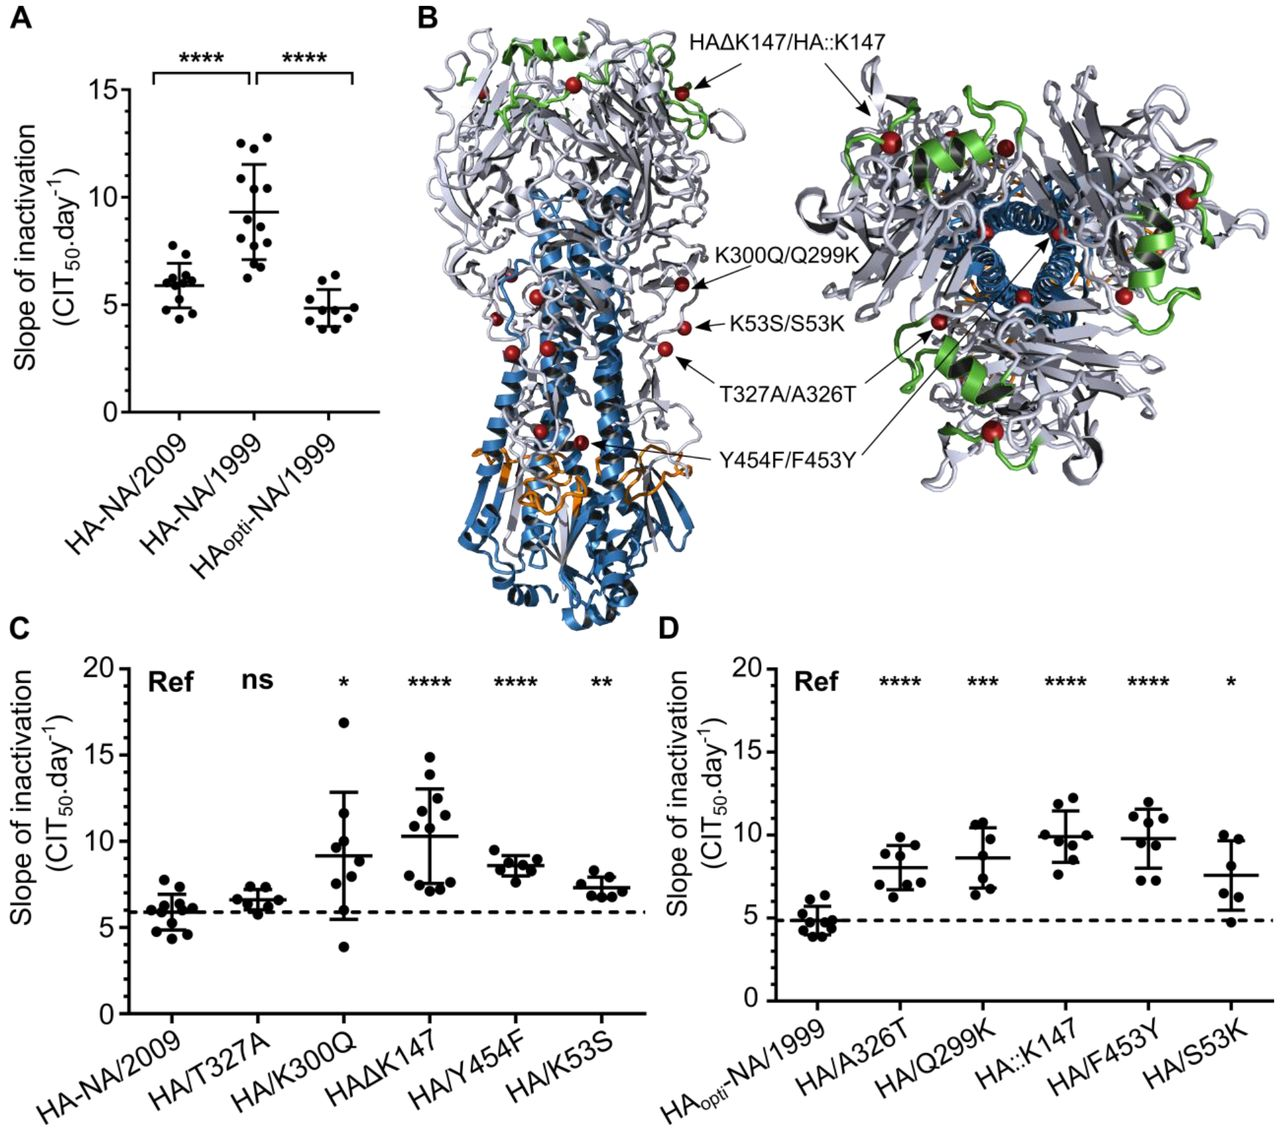 Influenza A virus environmental persistence is driven by the